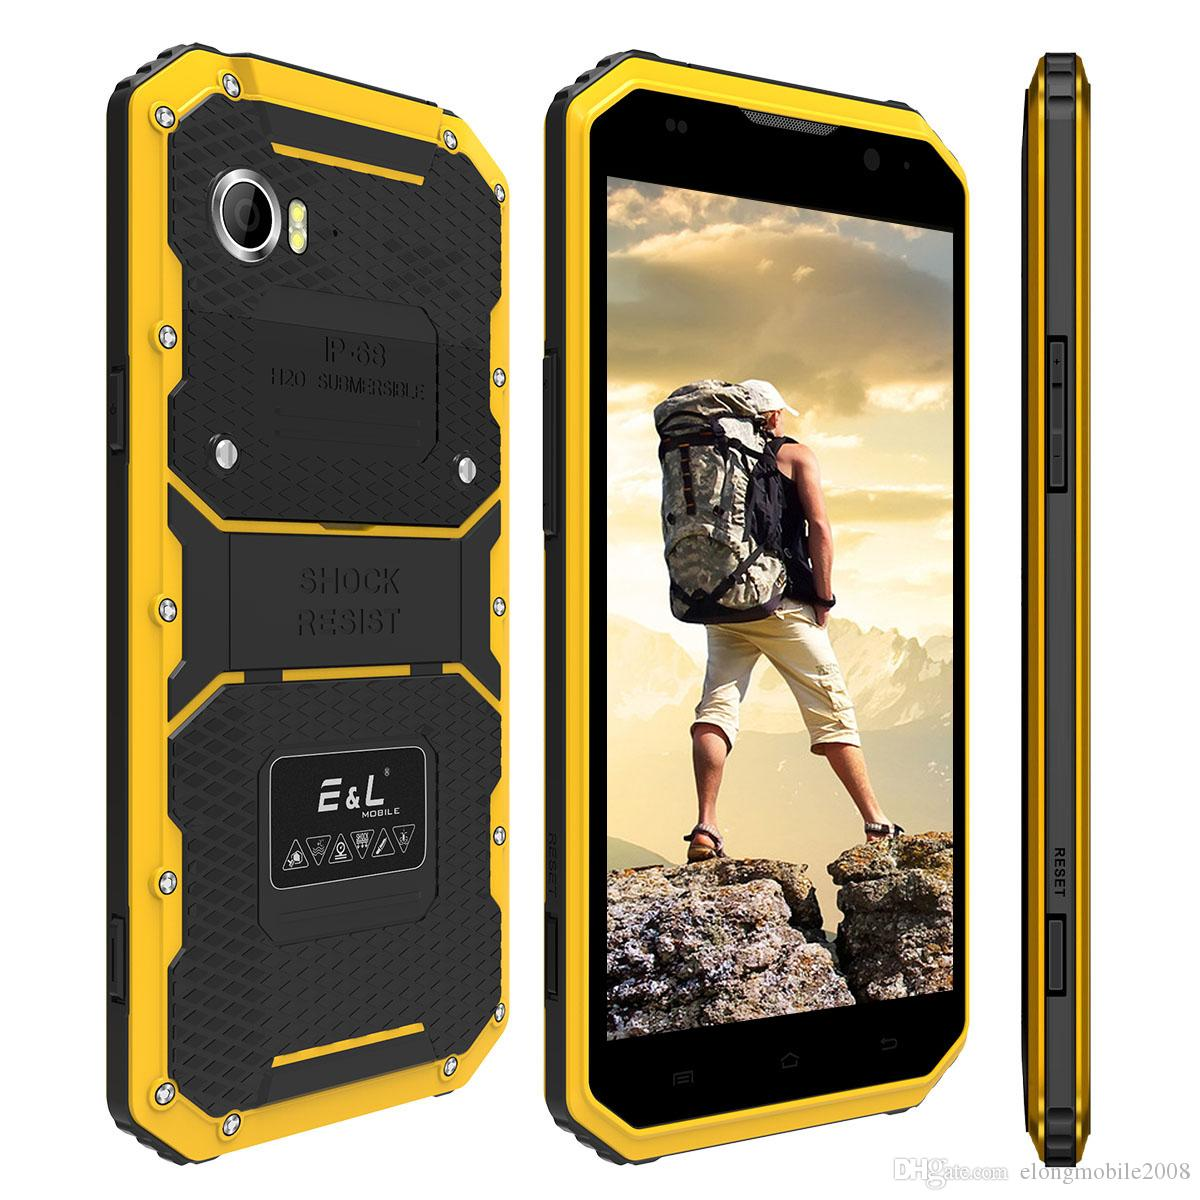 Best Rugged Smartphone Eu0026L Proofings W9 Ip68 Waterproof 6.0 Inch Android  Dual Sim Camera Outdoor 4g Let Cellphone Unlocked Stock In Usa Top Android  Phone ...